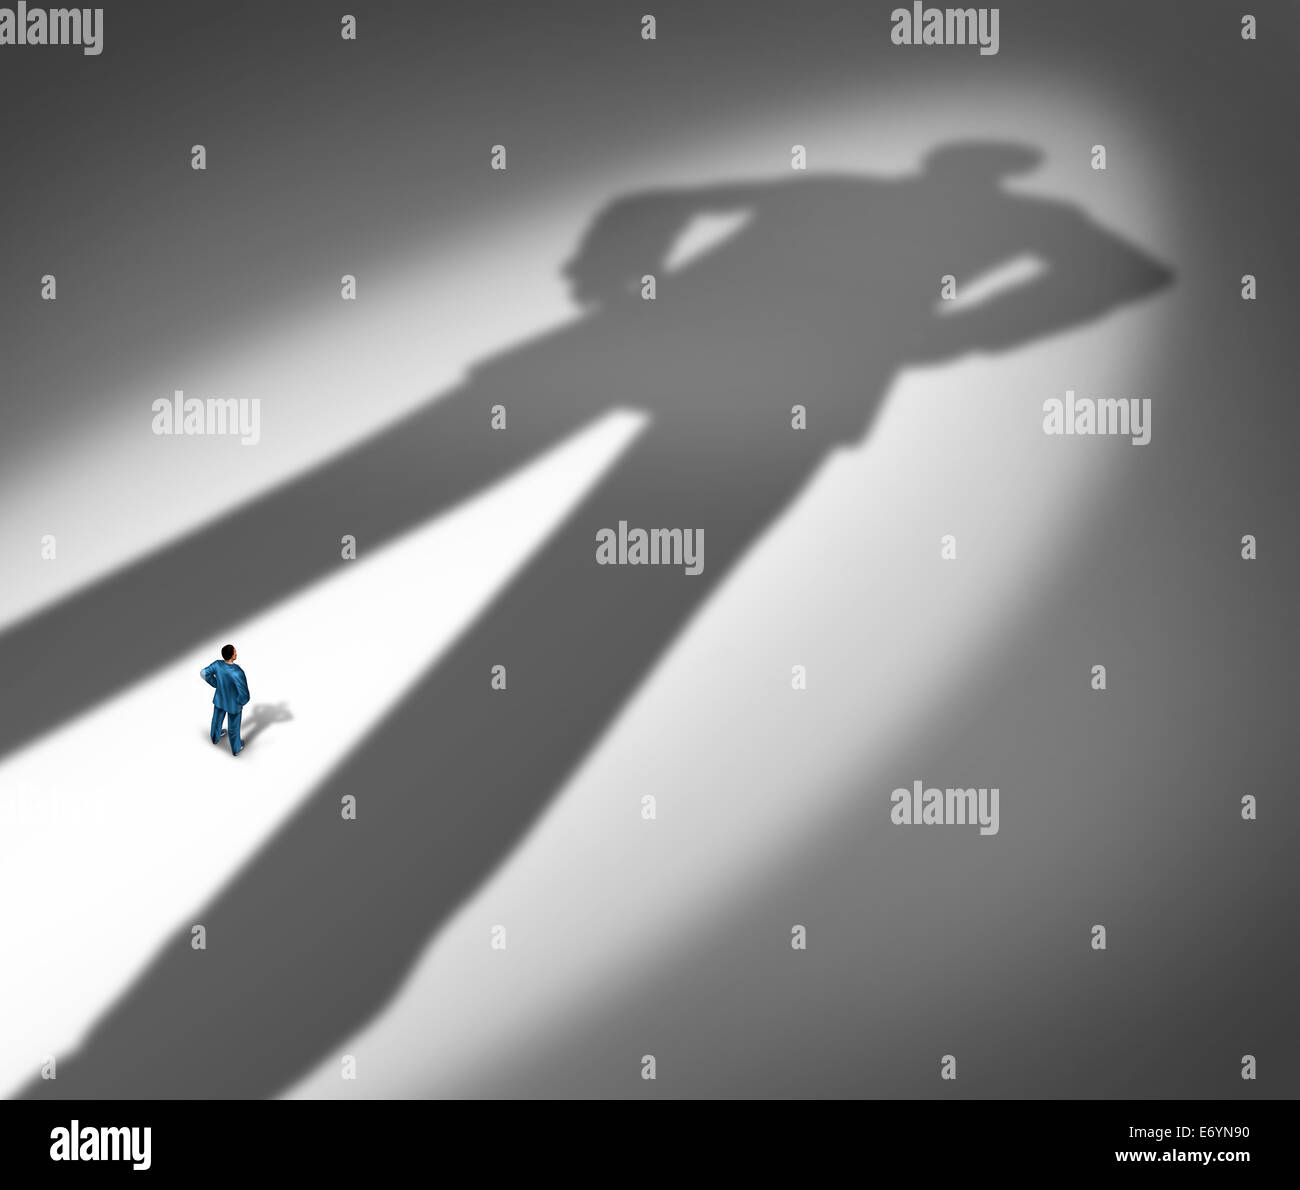 Under a shadow business metaphor for living under a powerful leader or the little guy or small business competing - Stock Image